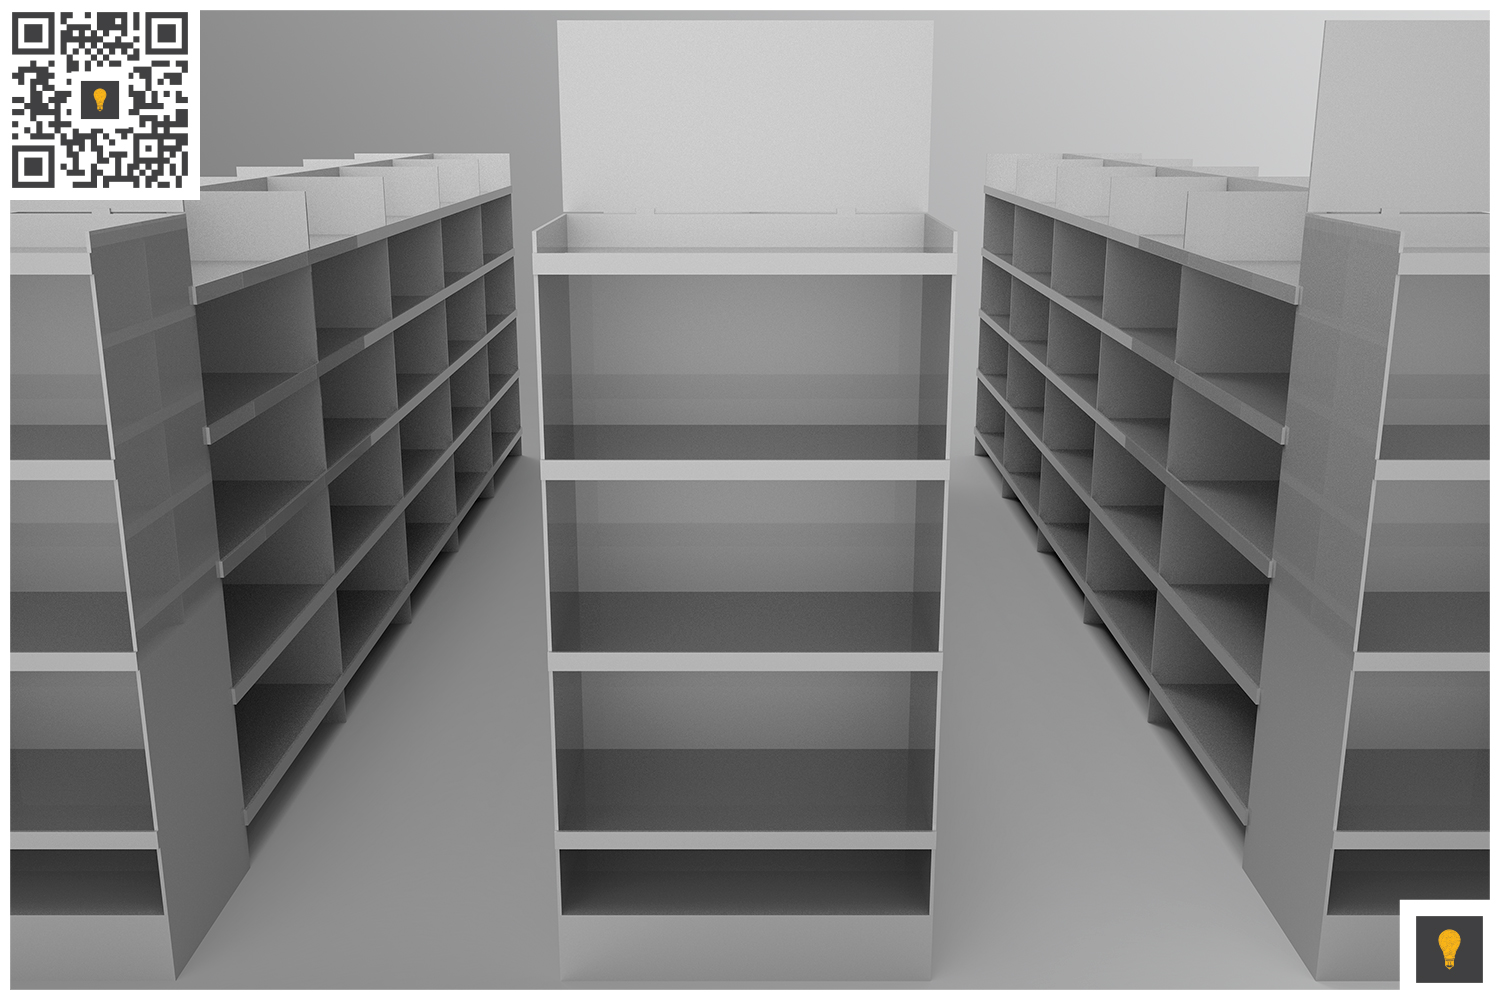 Aisle with Gondola Store 3D Render example image 11